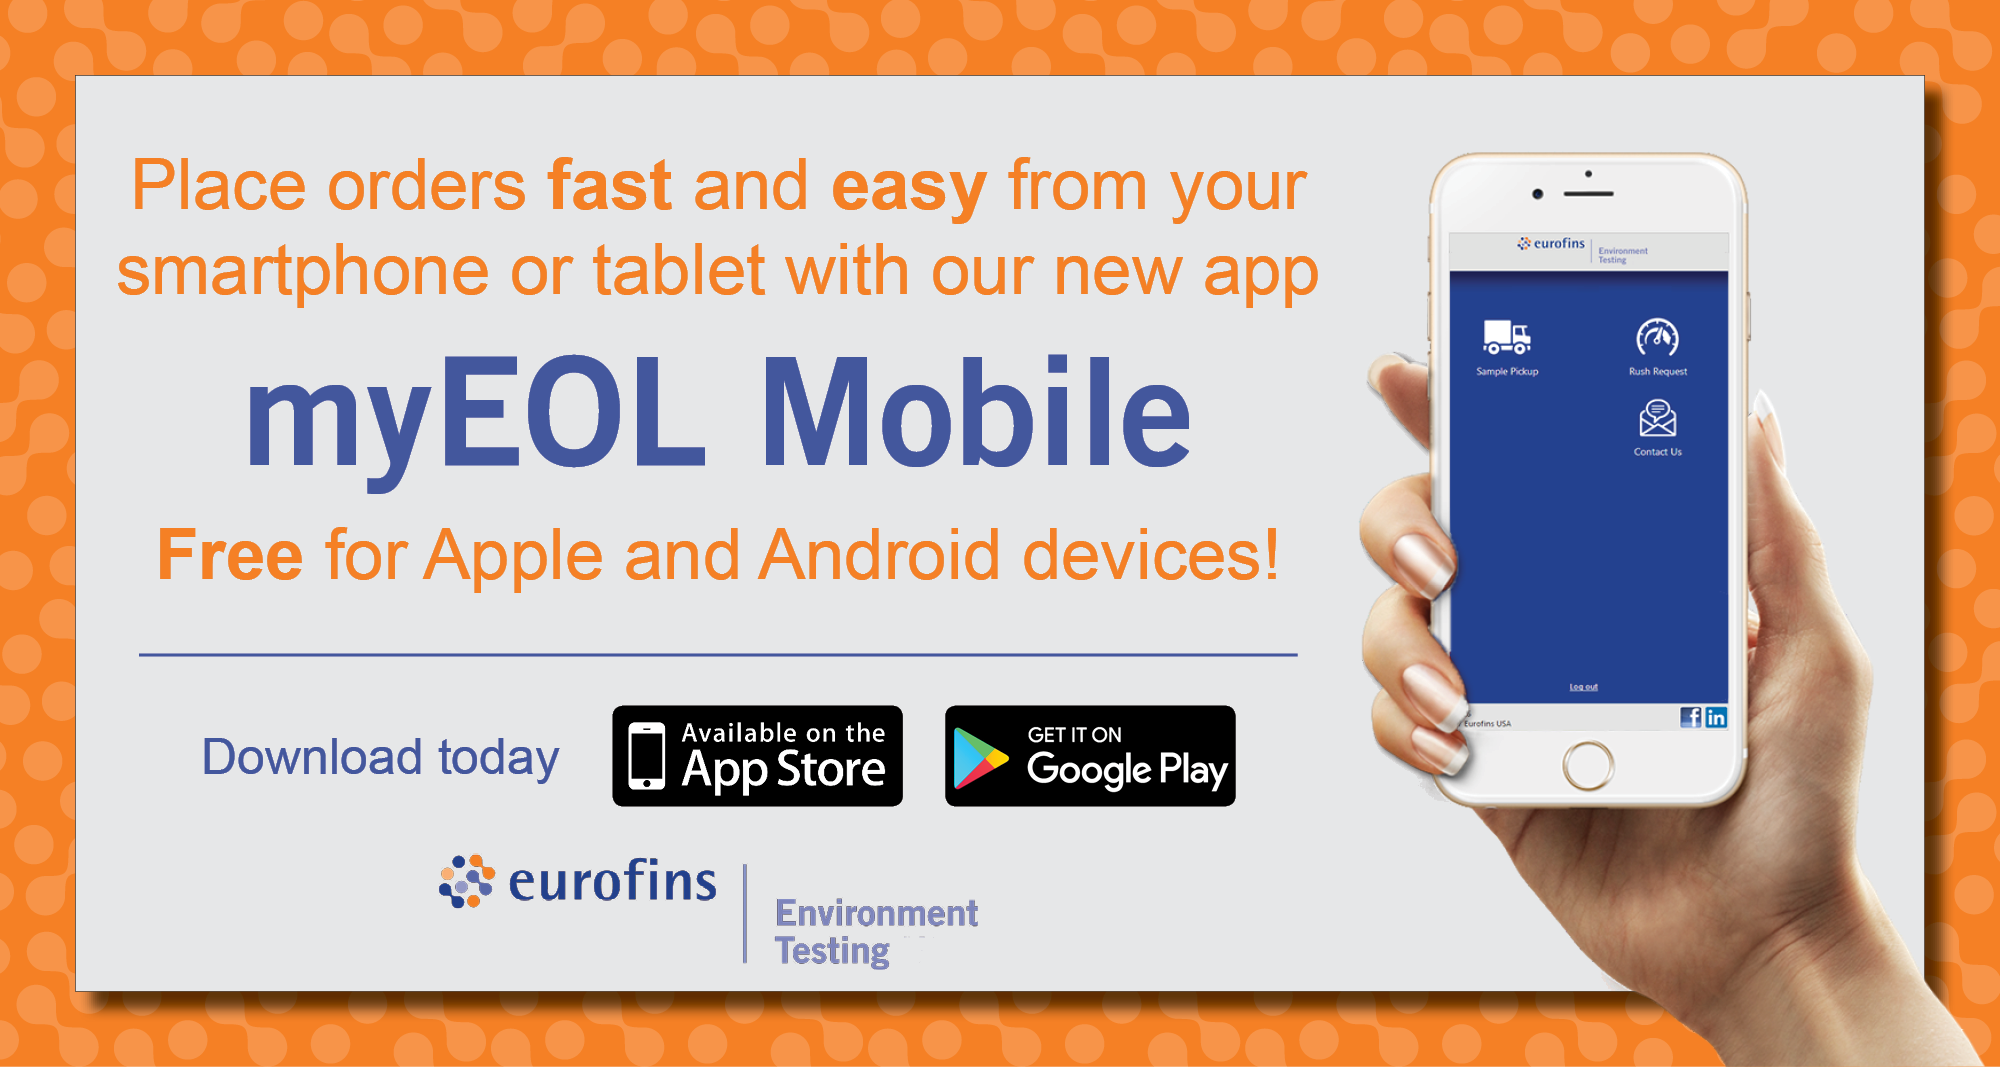 myEOL Mobile App